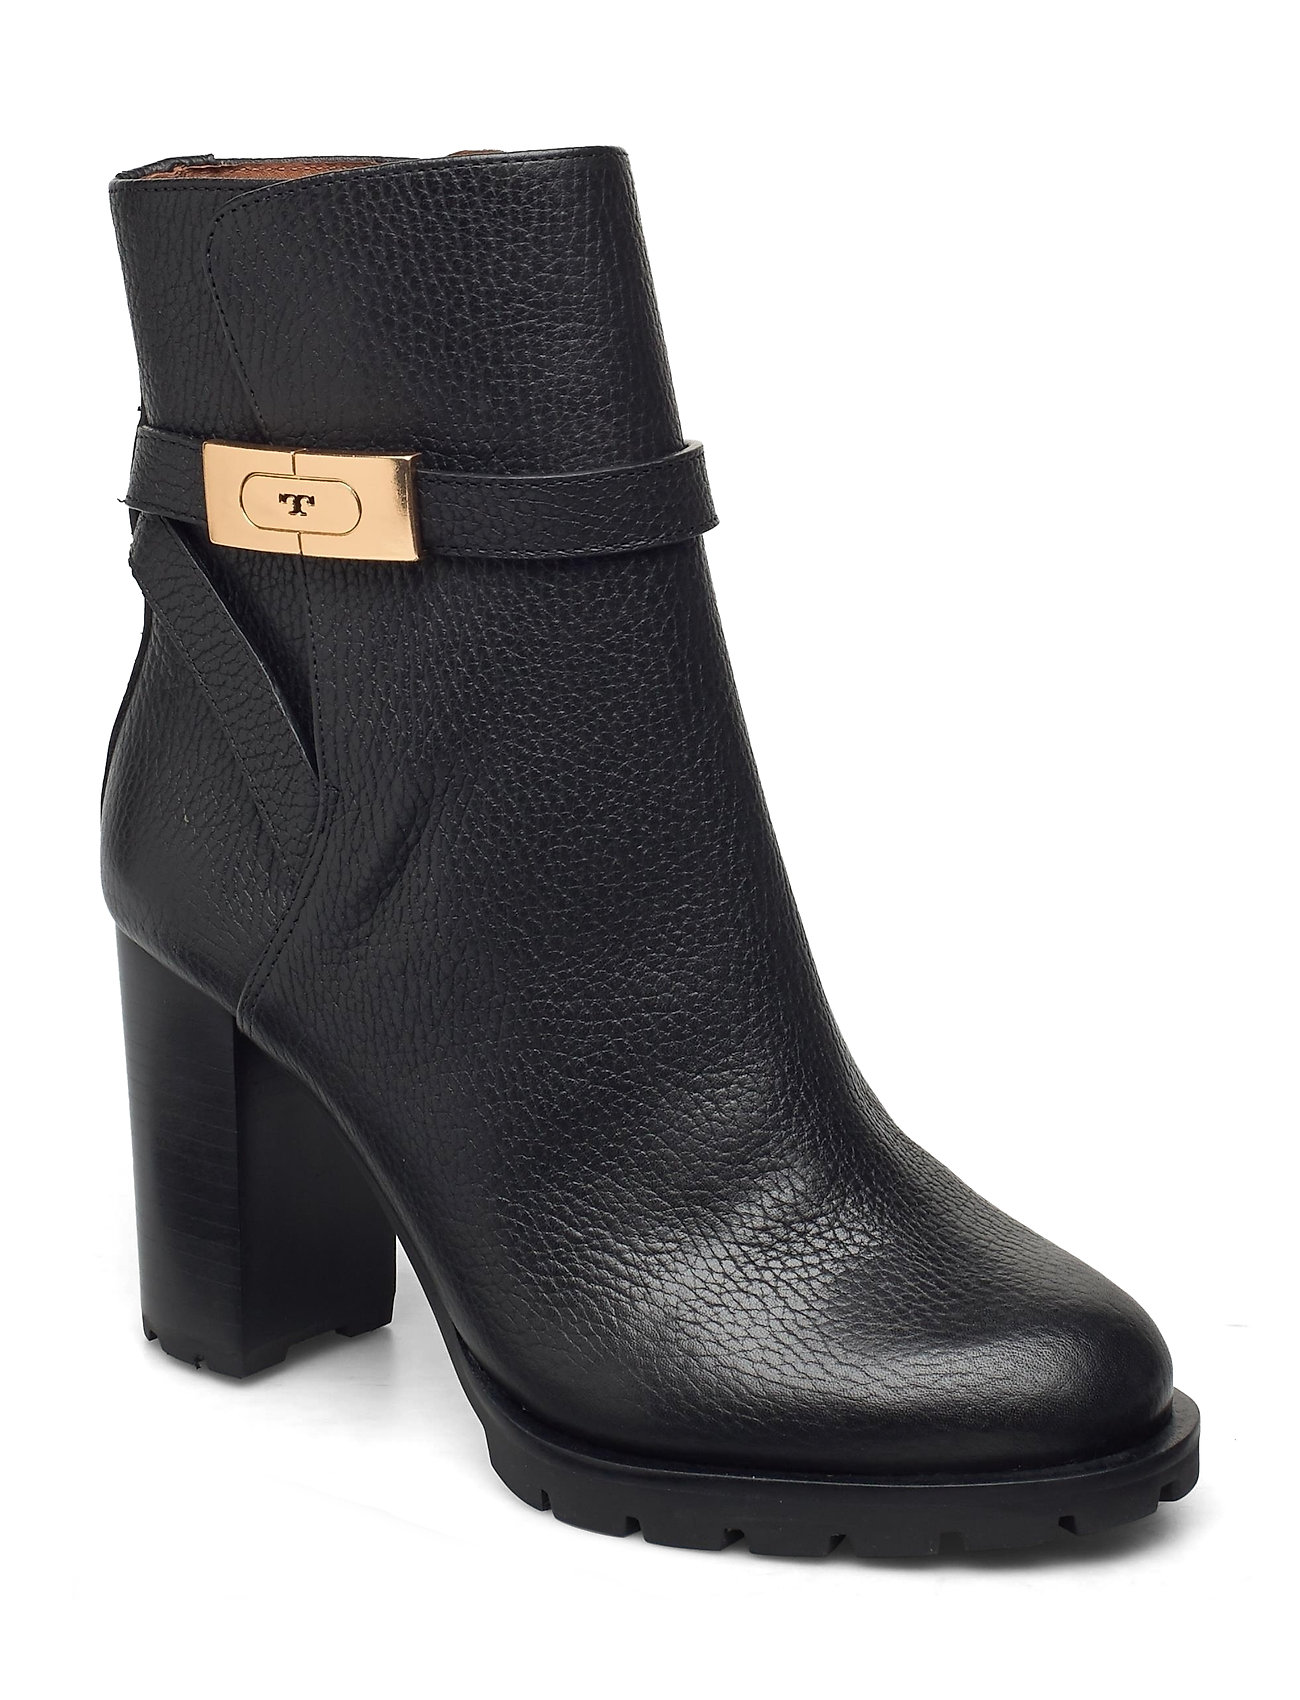 Image of Ankle Bootie Shoes Boots Ankle Boots Ankle Boot - Heel Sort Tory Burch (3455225463)